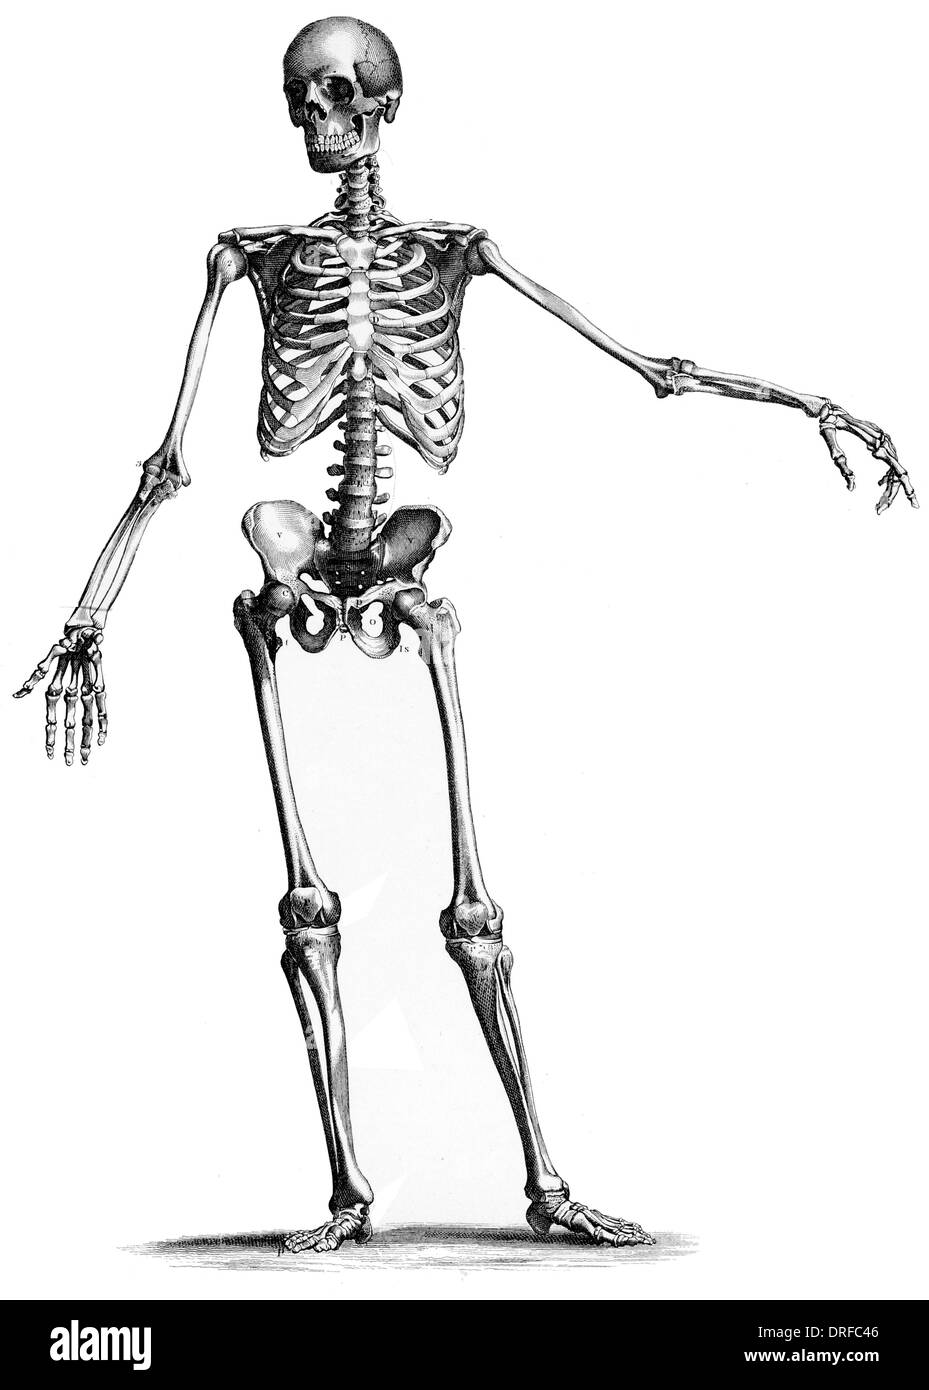 front frontal view standing skeleton of human body - Stock Image